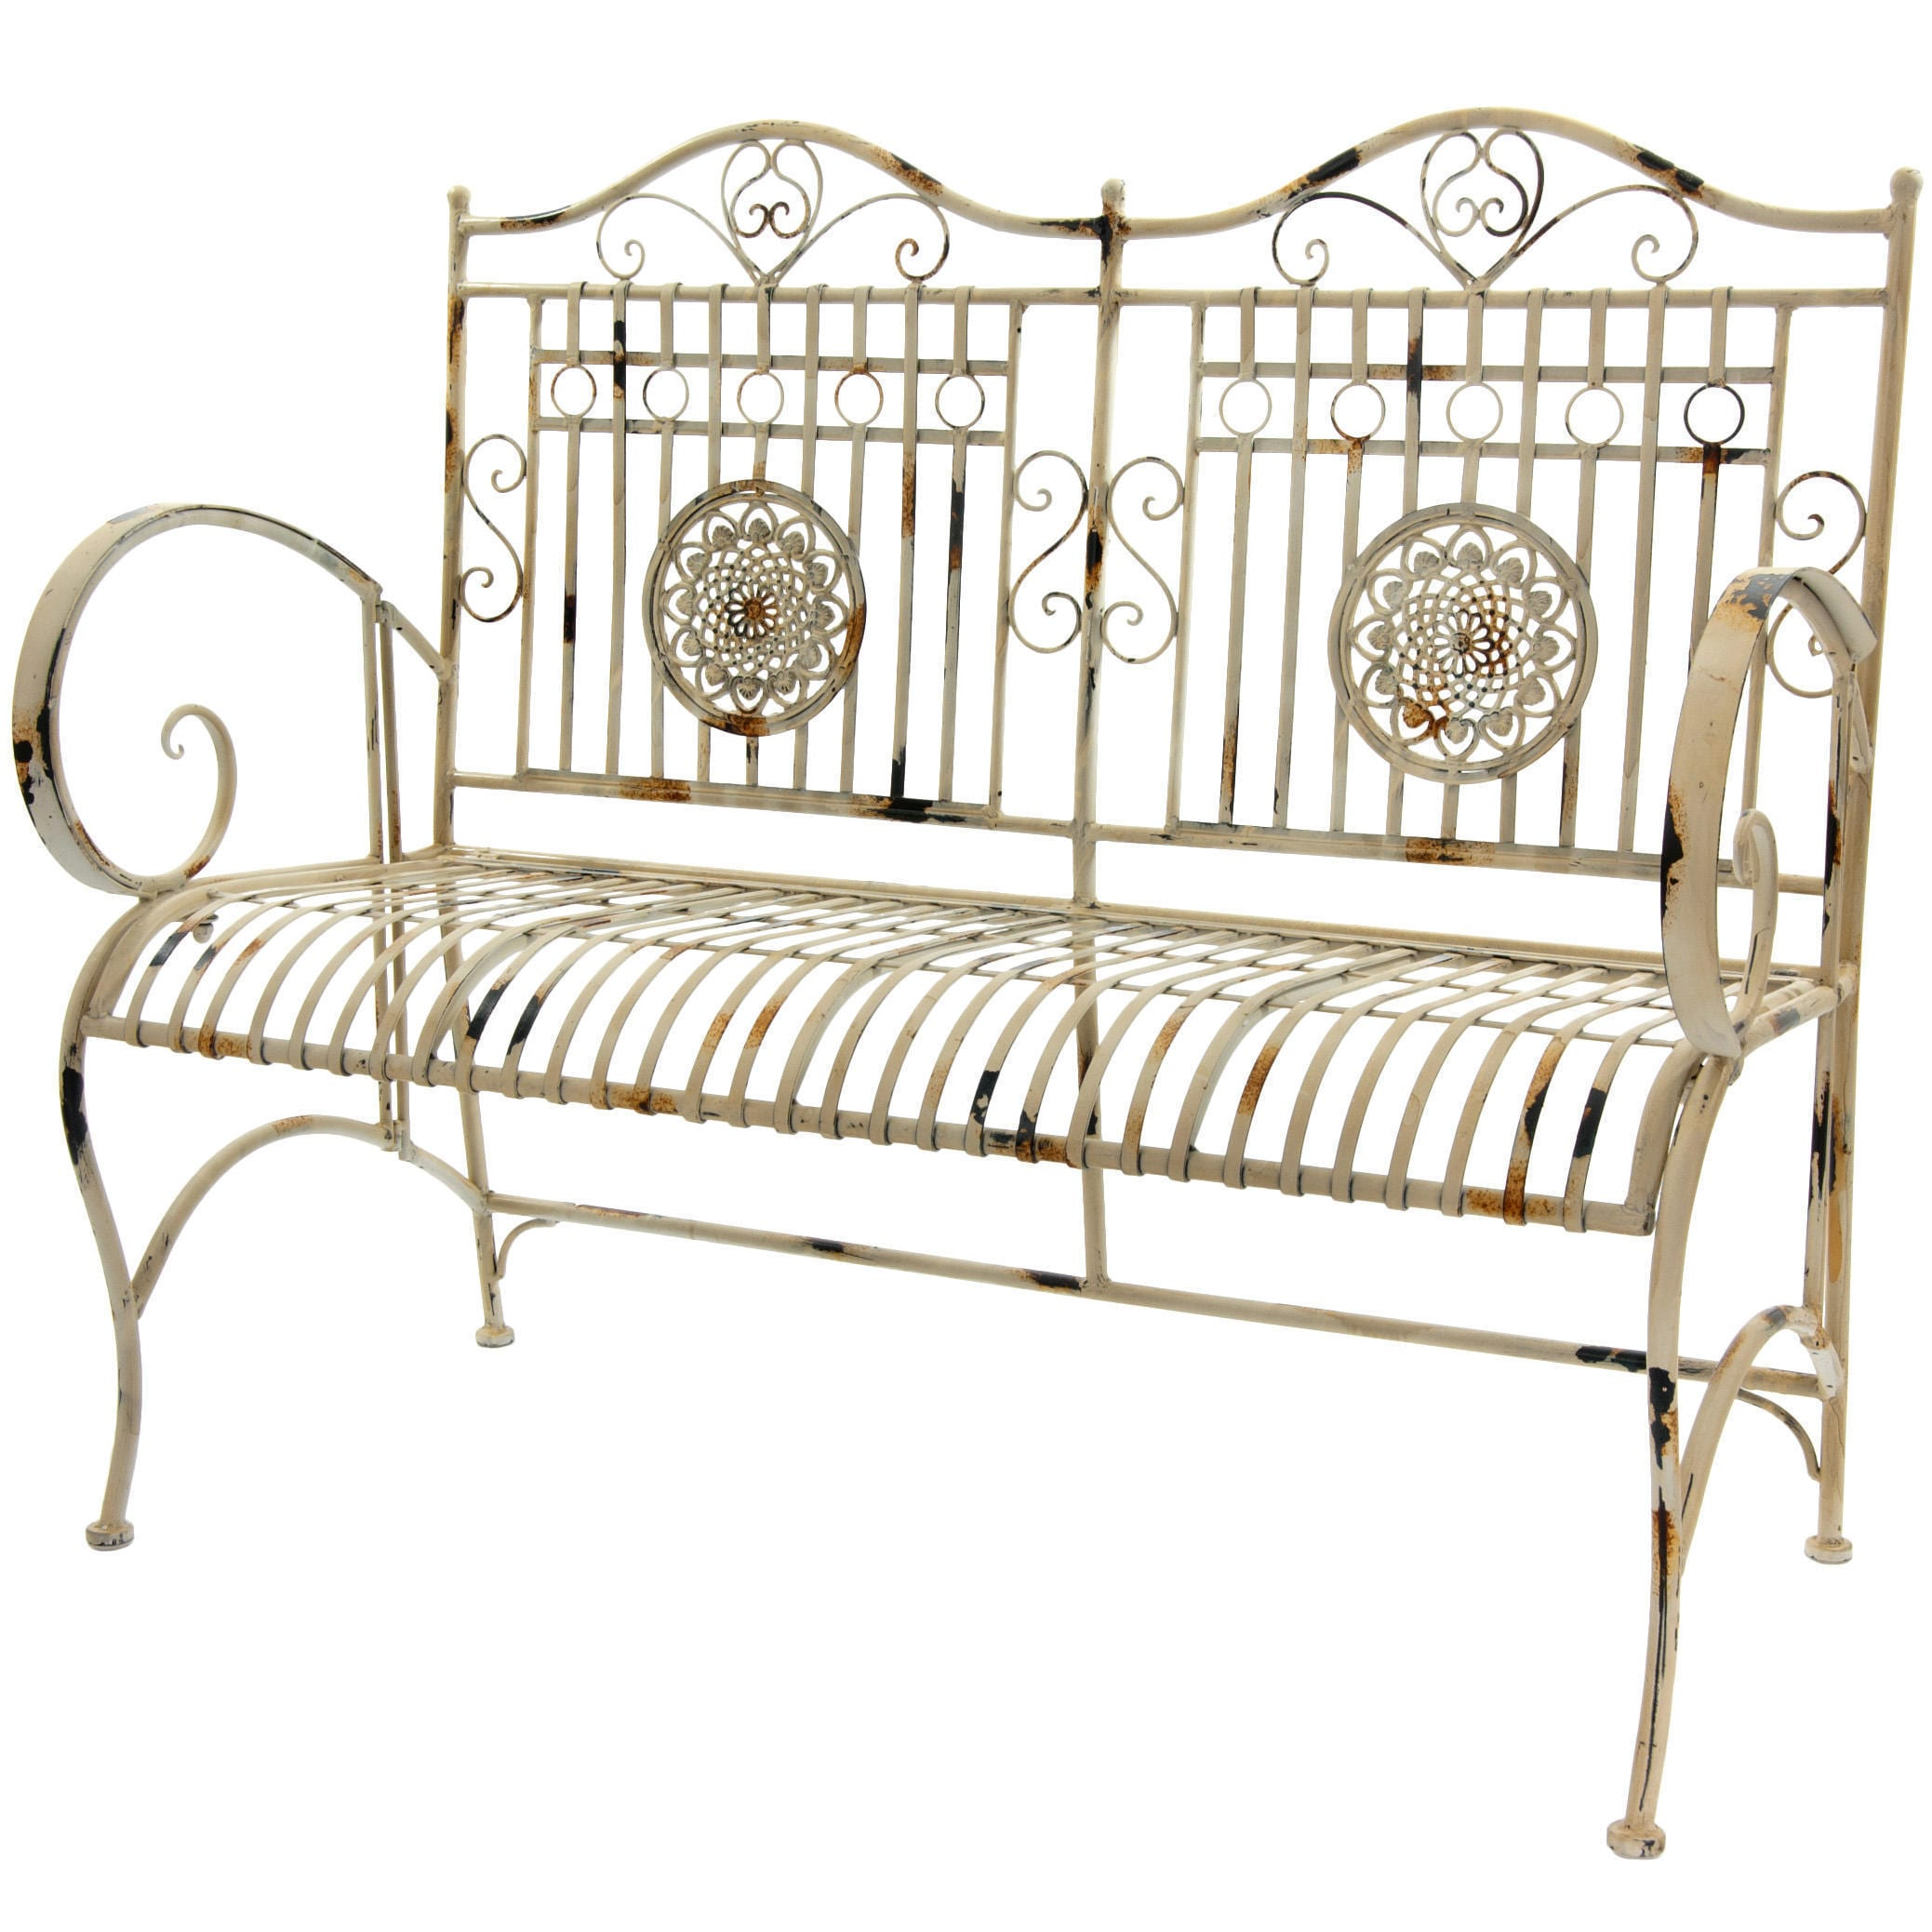 Handmade Distressed White Rustic Metal Garden Bench (Chin...